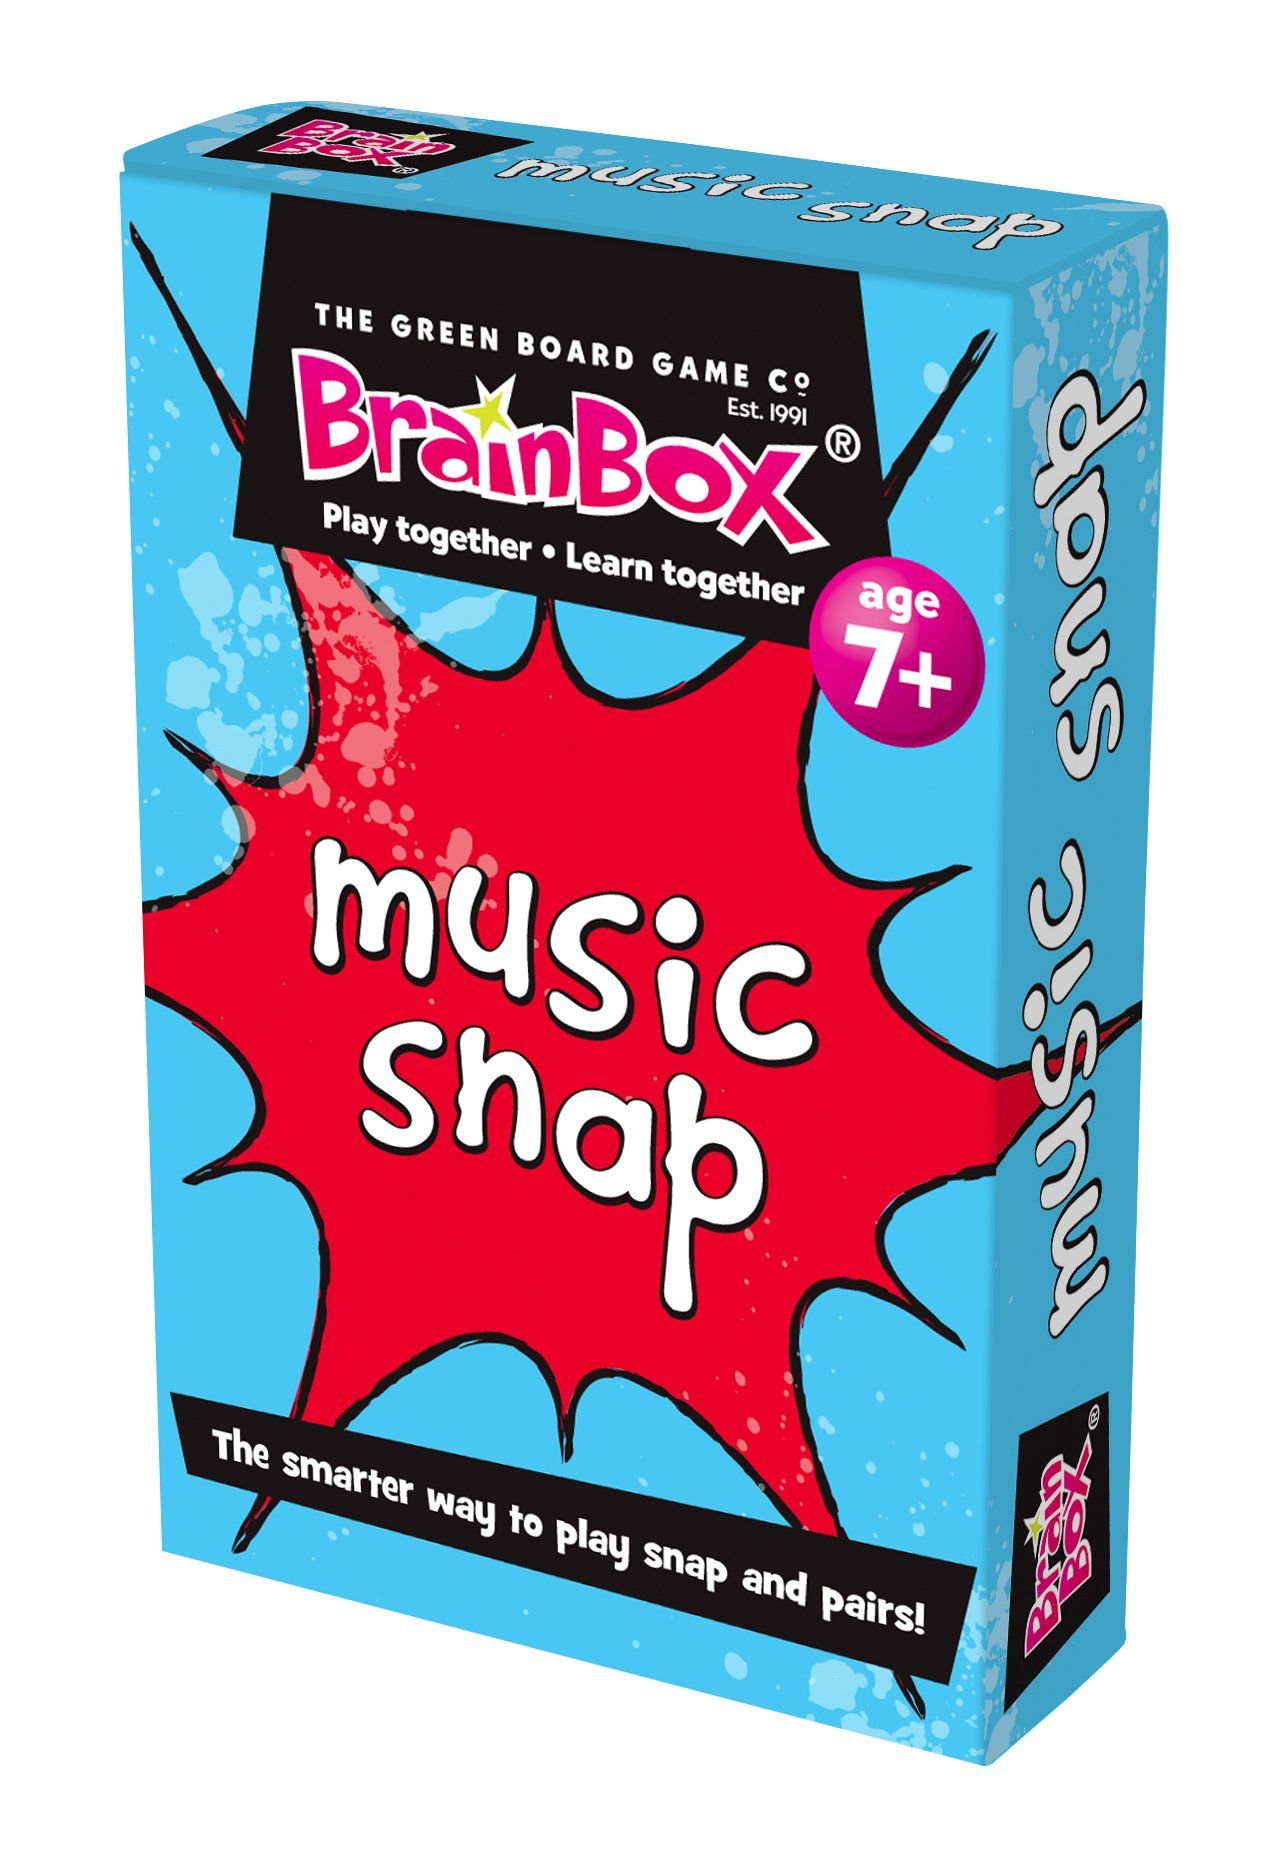 Music Snap Music Snap By The Green Board Game Co 16